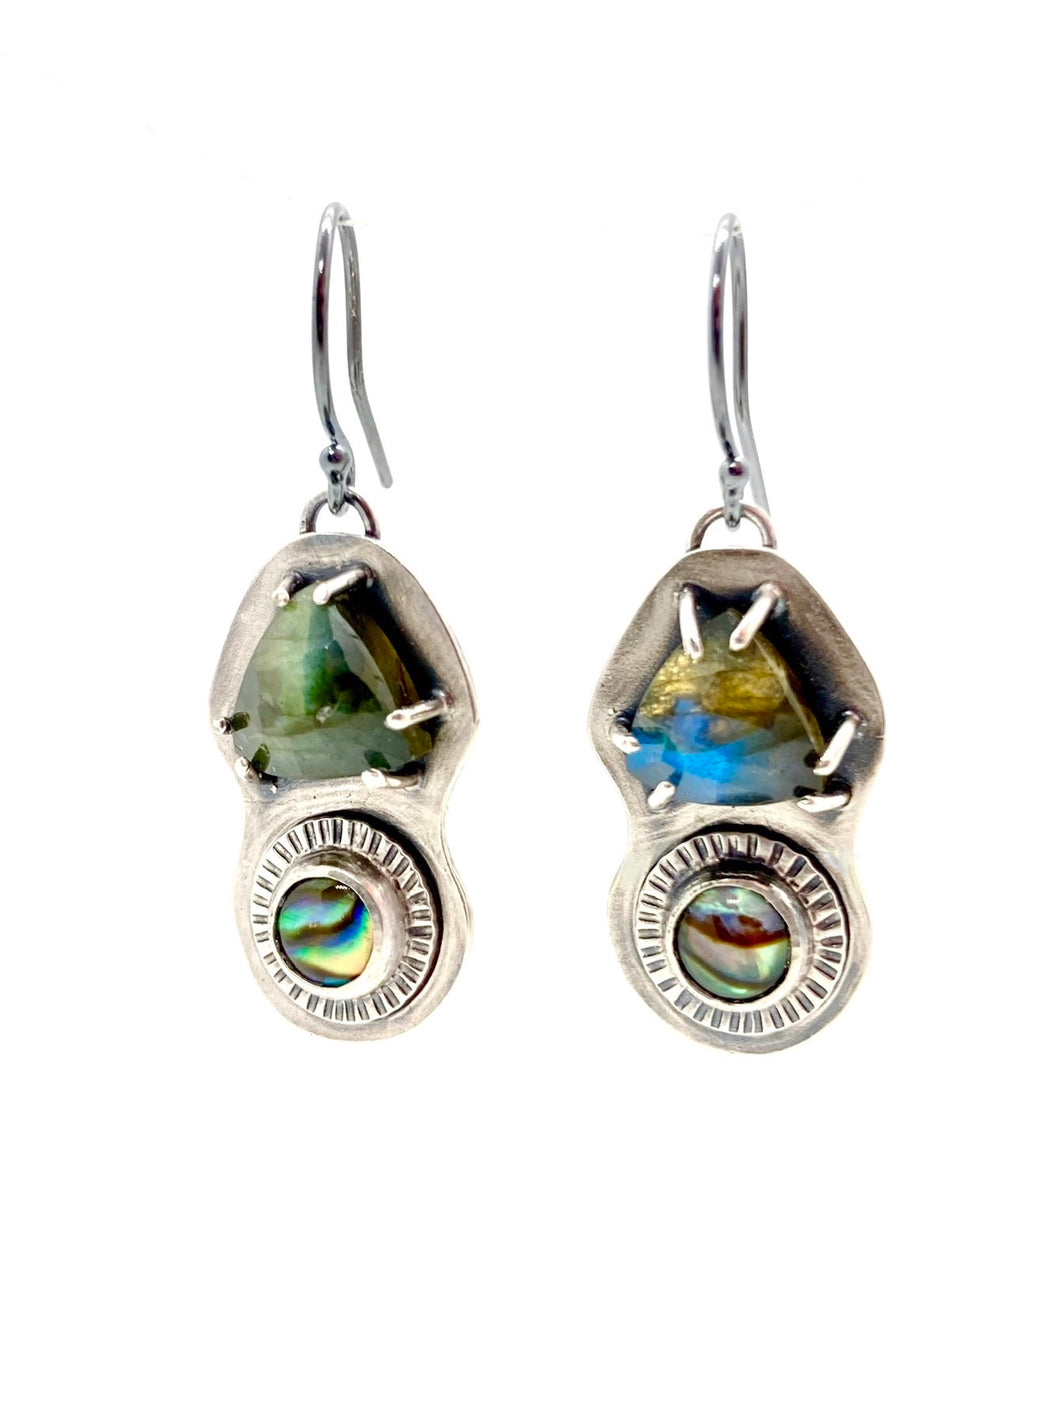 Labradorite and Abalone Earrings in Sterling Silver